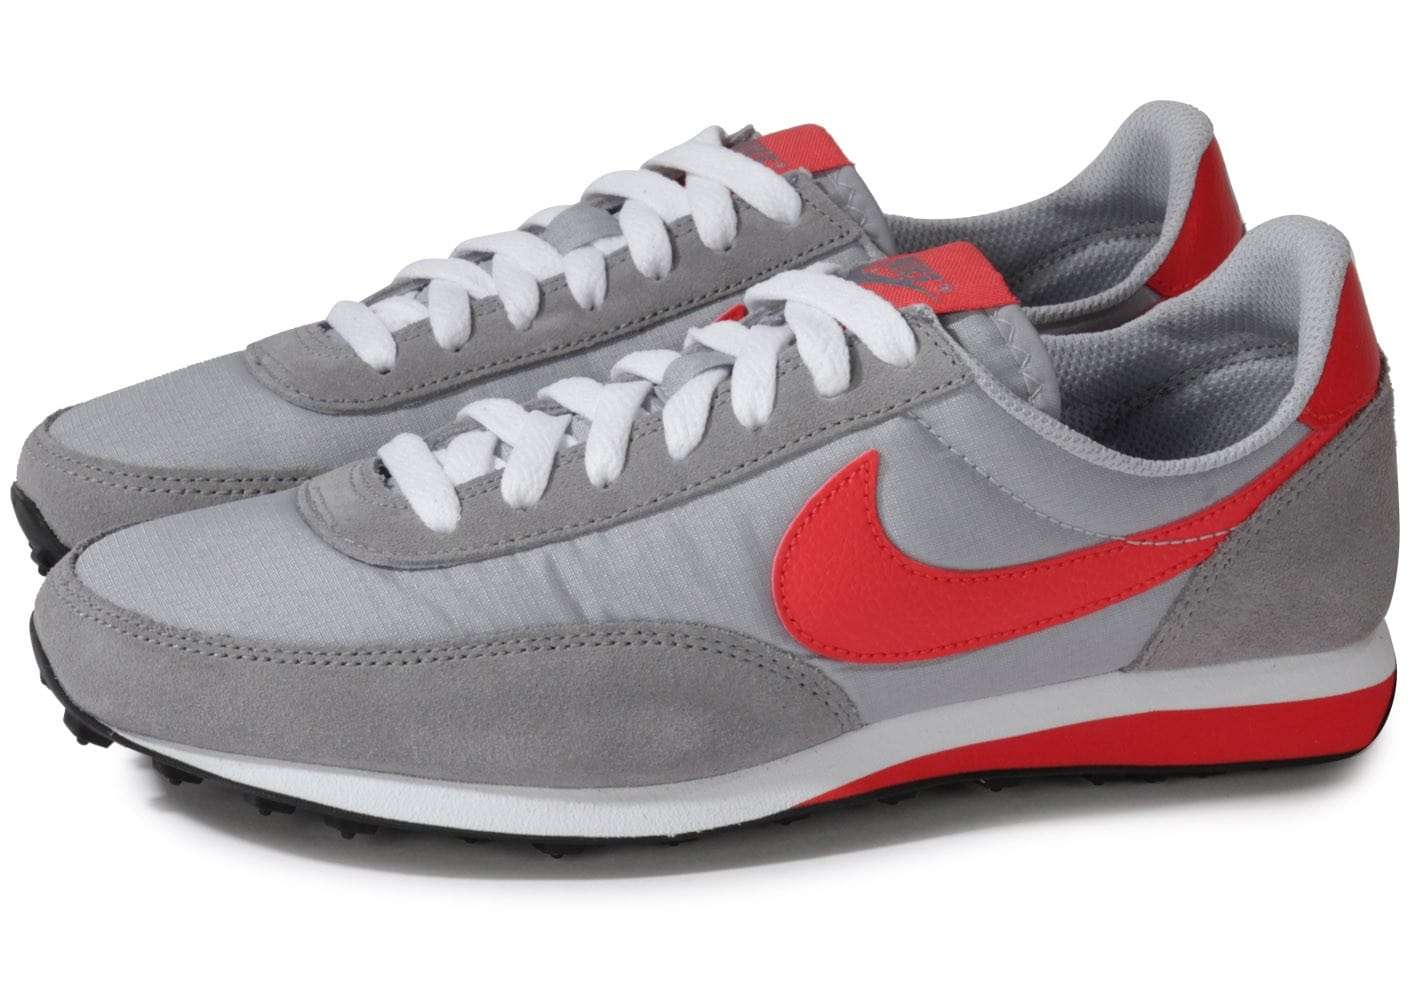 Nike Elite Si Junior Grise Chaussures Chaussures Chausport